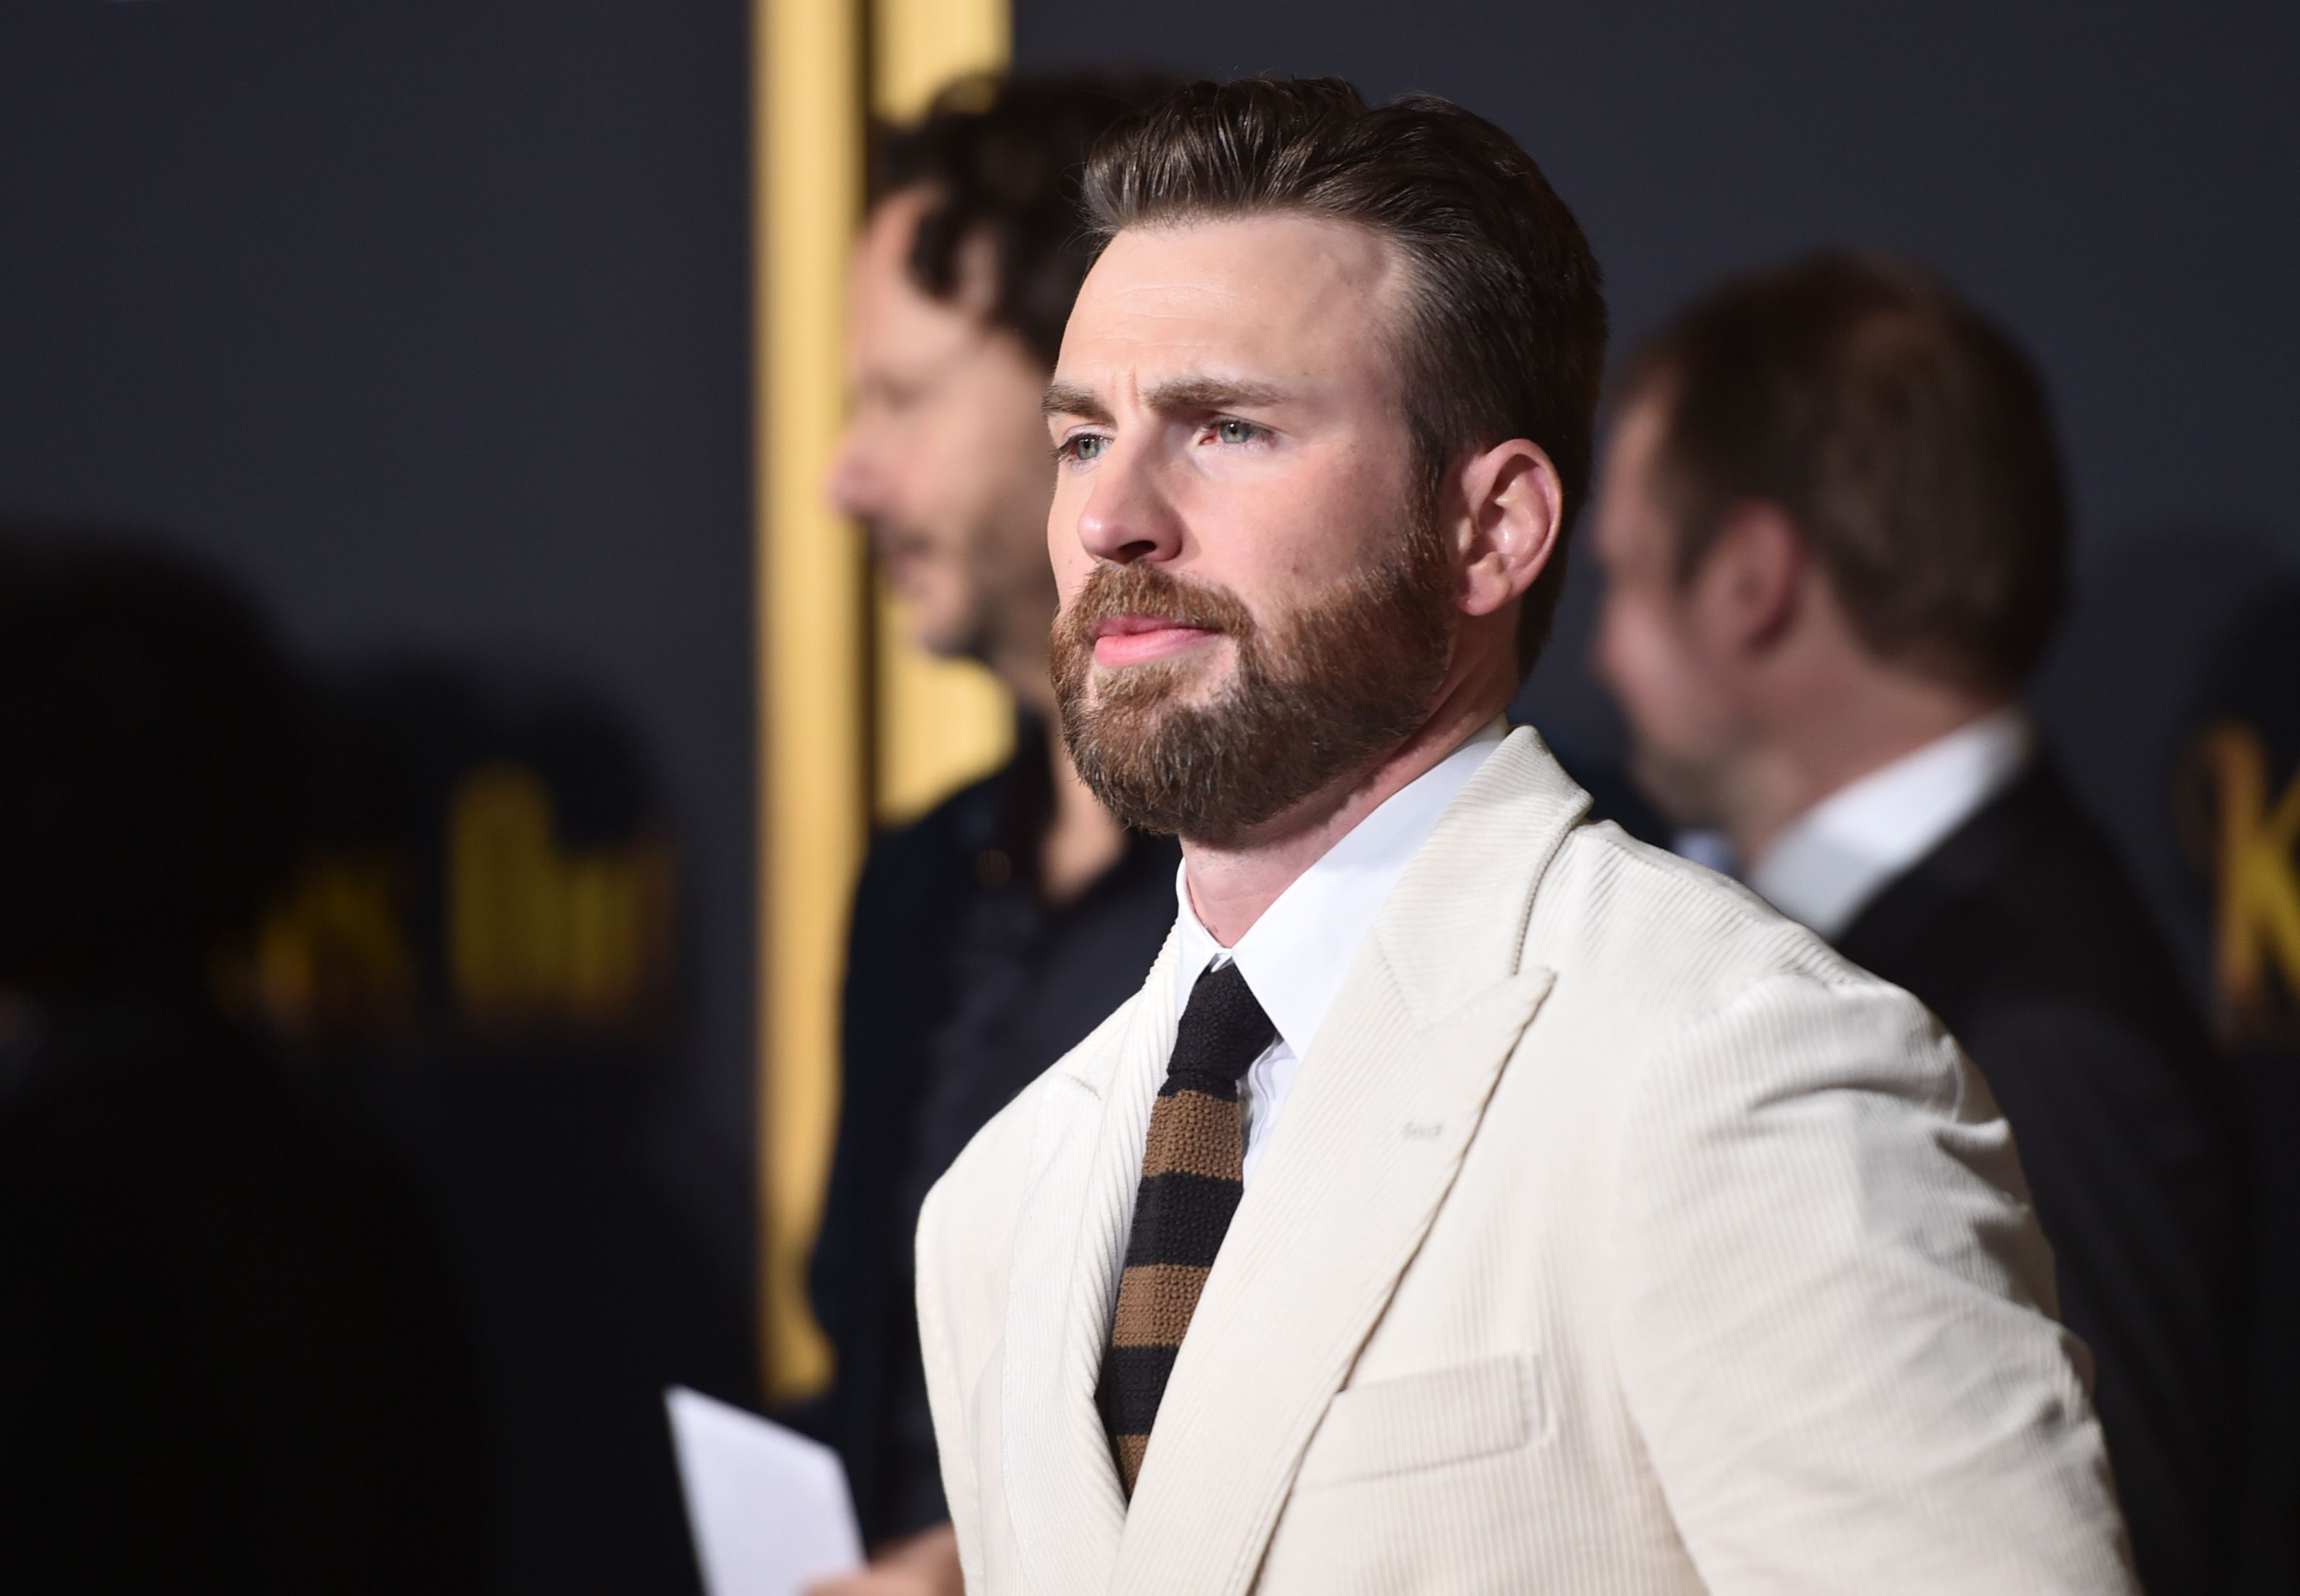 Chris Evans' Double-Breasted Winter-White Suit Is Giving Me So Many Conflicting Feelings